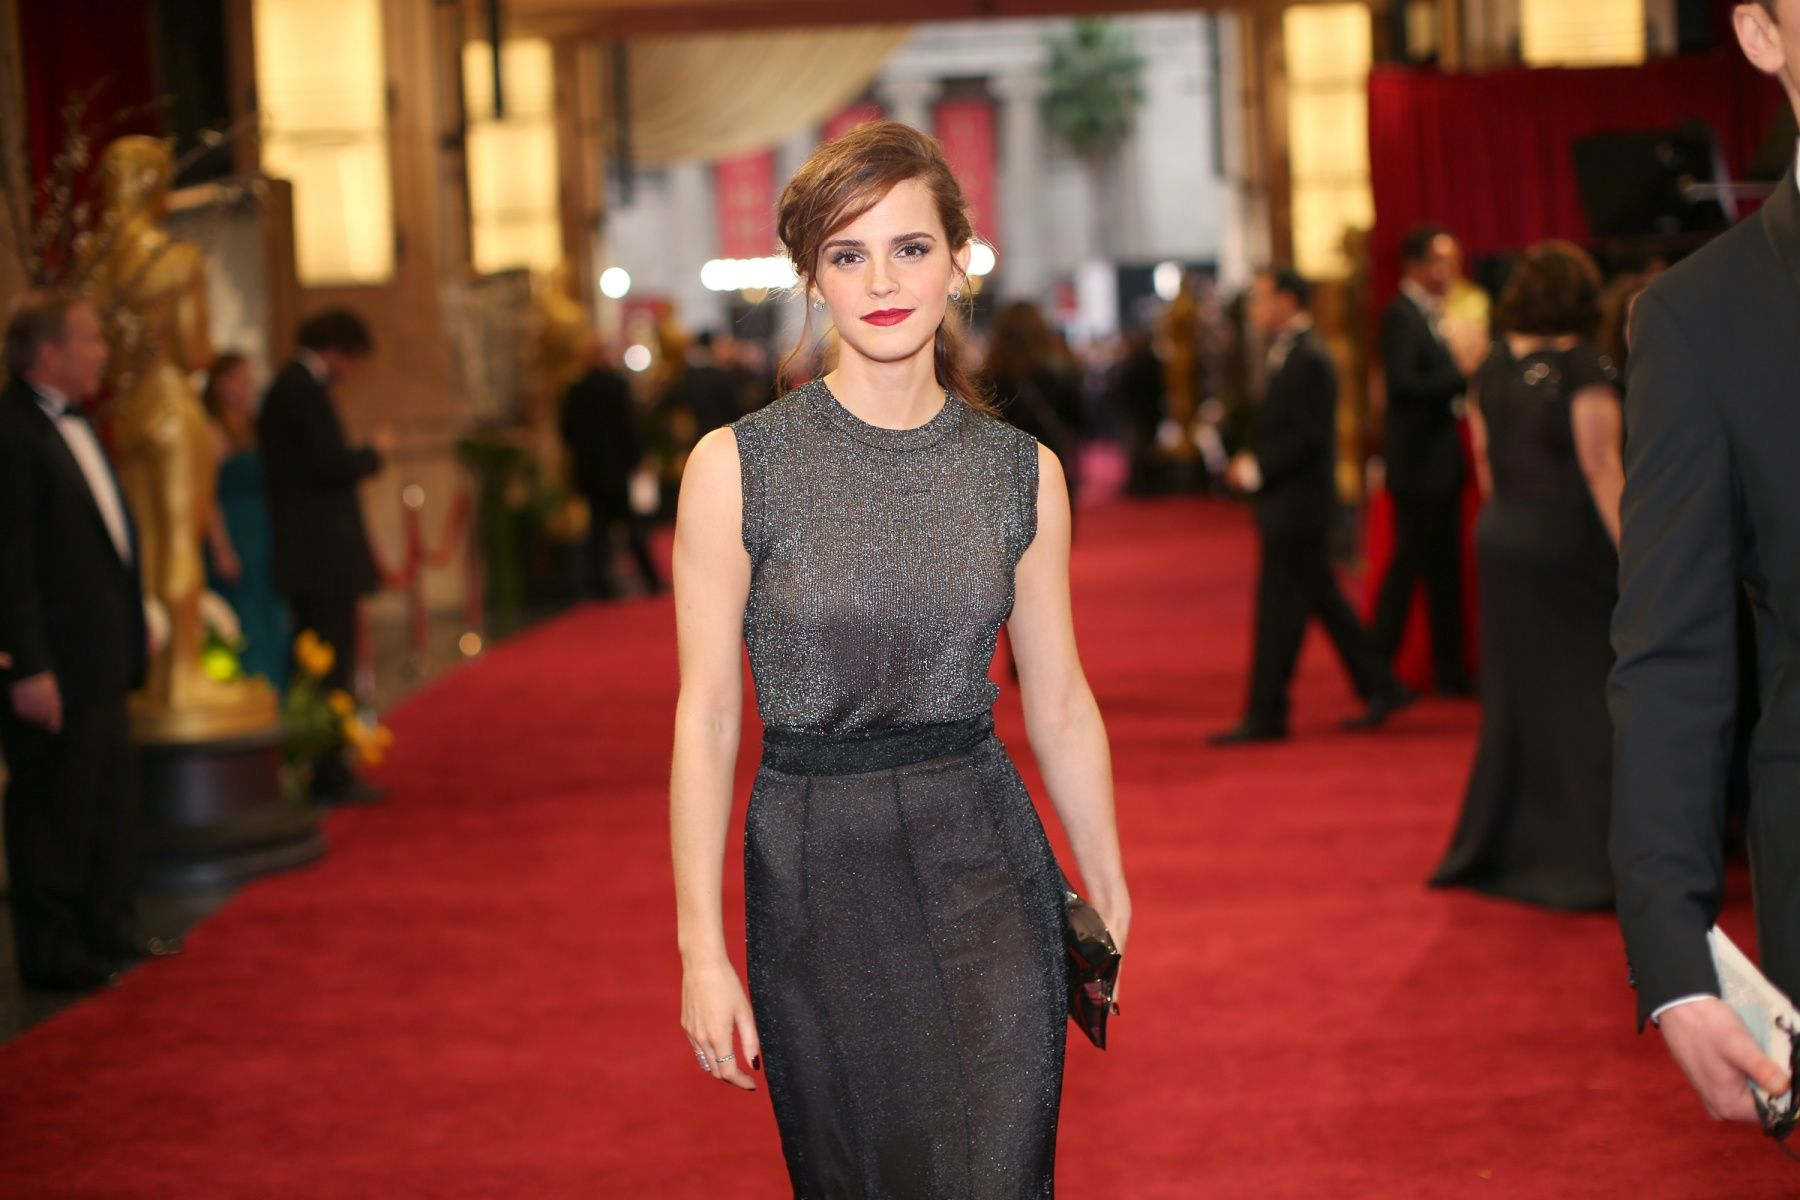 attends the Oscars at Hollywood & Highland Center on March 2, 2014 in Hollywood, California.